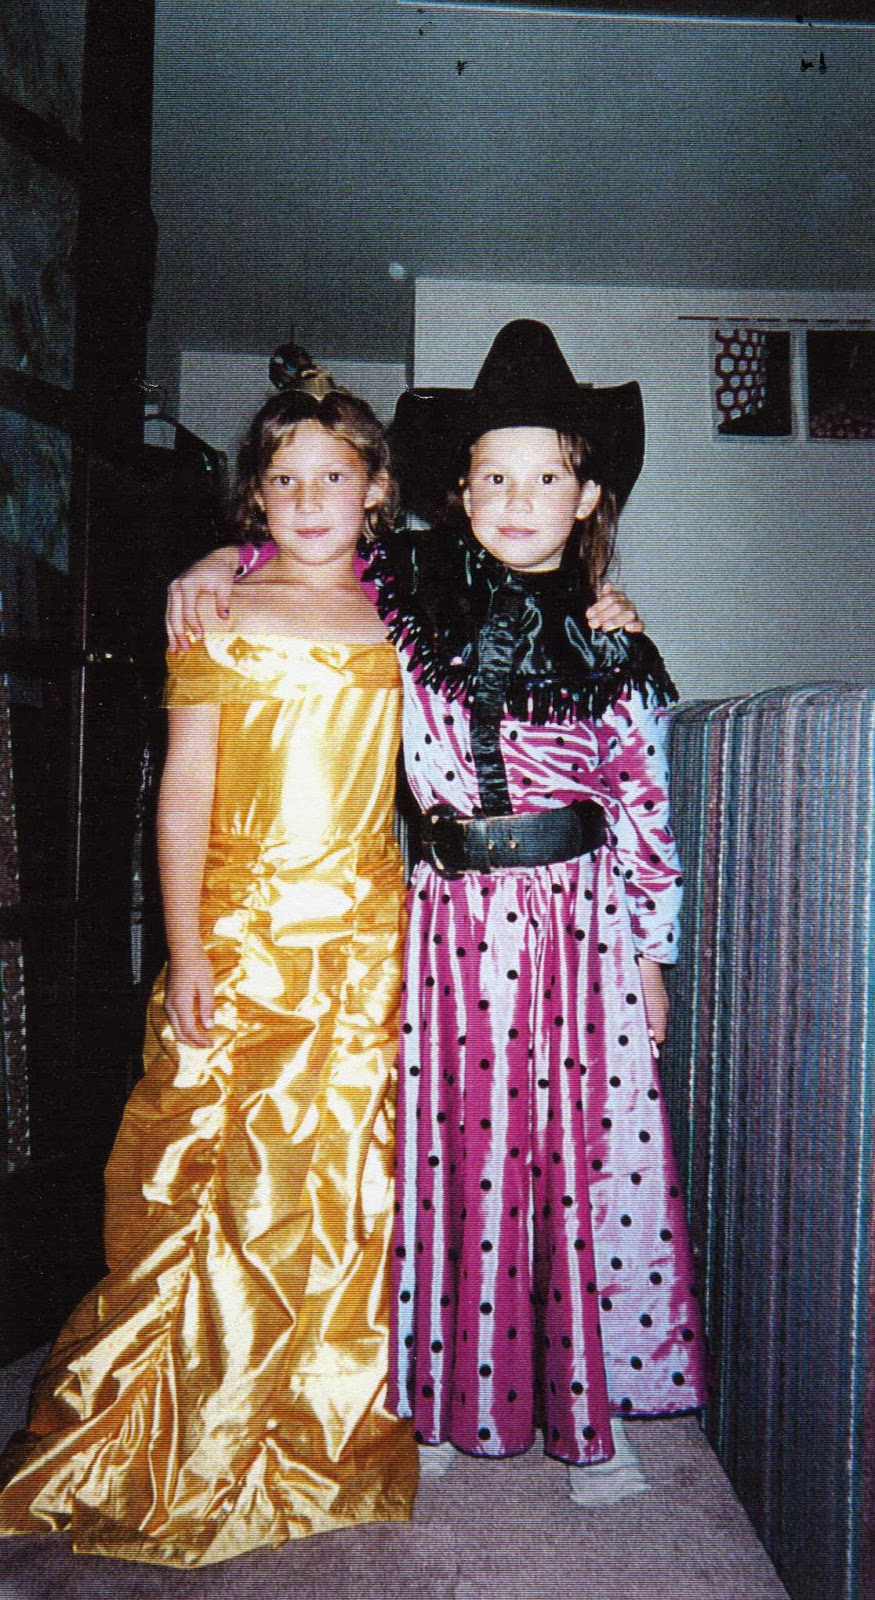 The next year I was Belle from Beauty and the Beast. Again it was a generic Halloween costume from a shop but I had fun with it.  sc 1 st  Charlotteu0027s Web & Charlotteu0027s Web: Flashback Friday: The Fourth